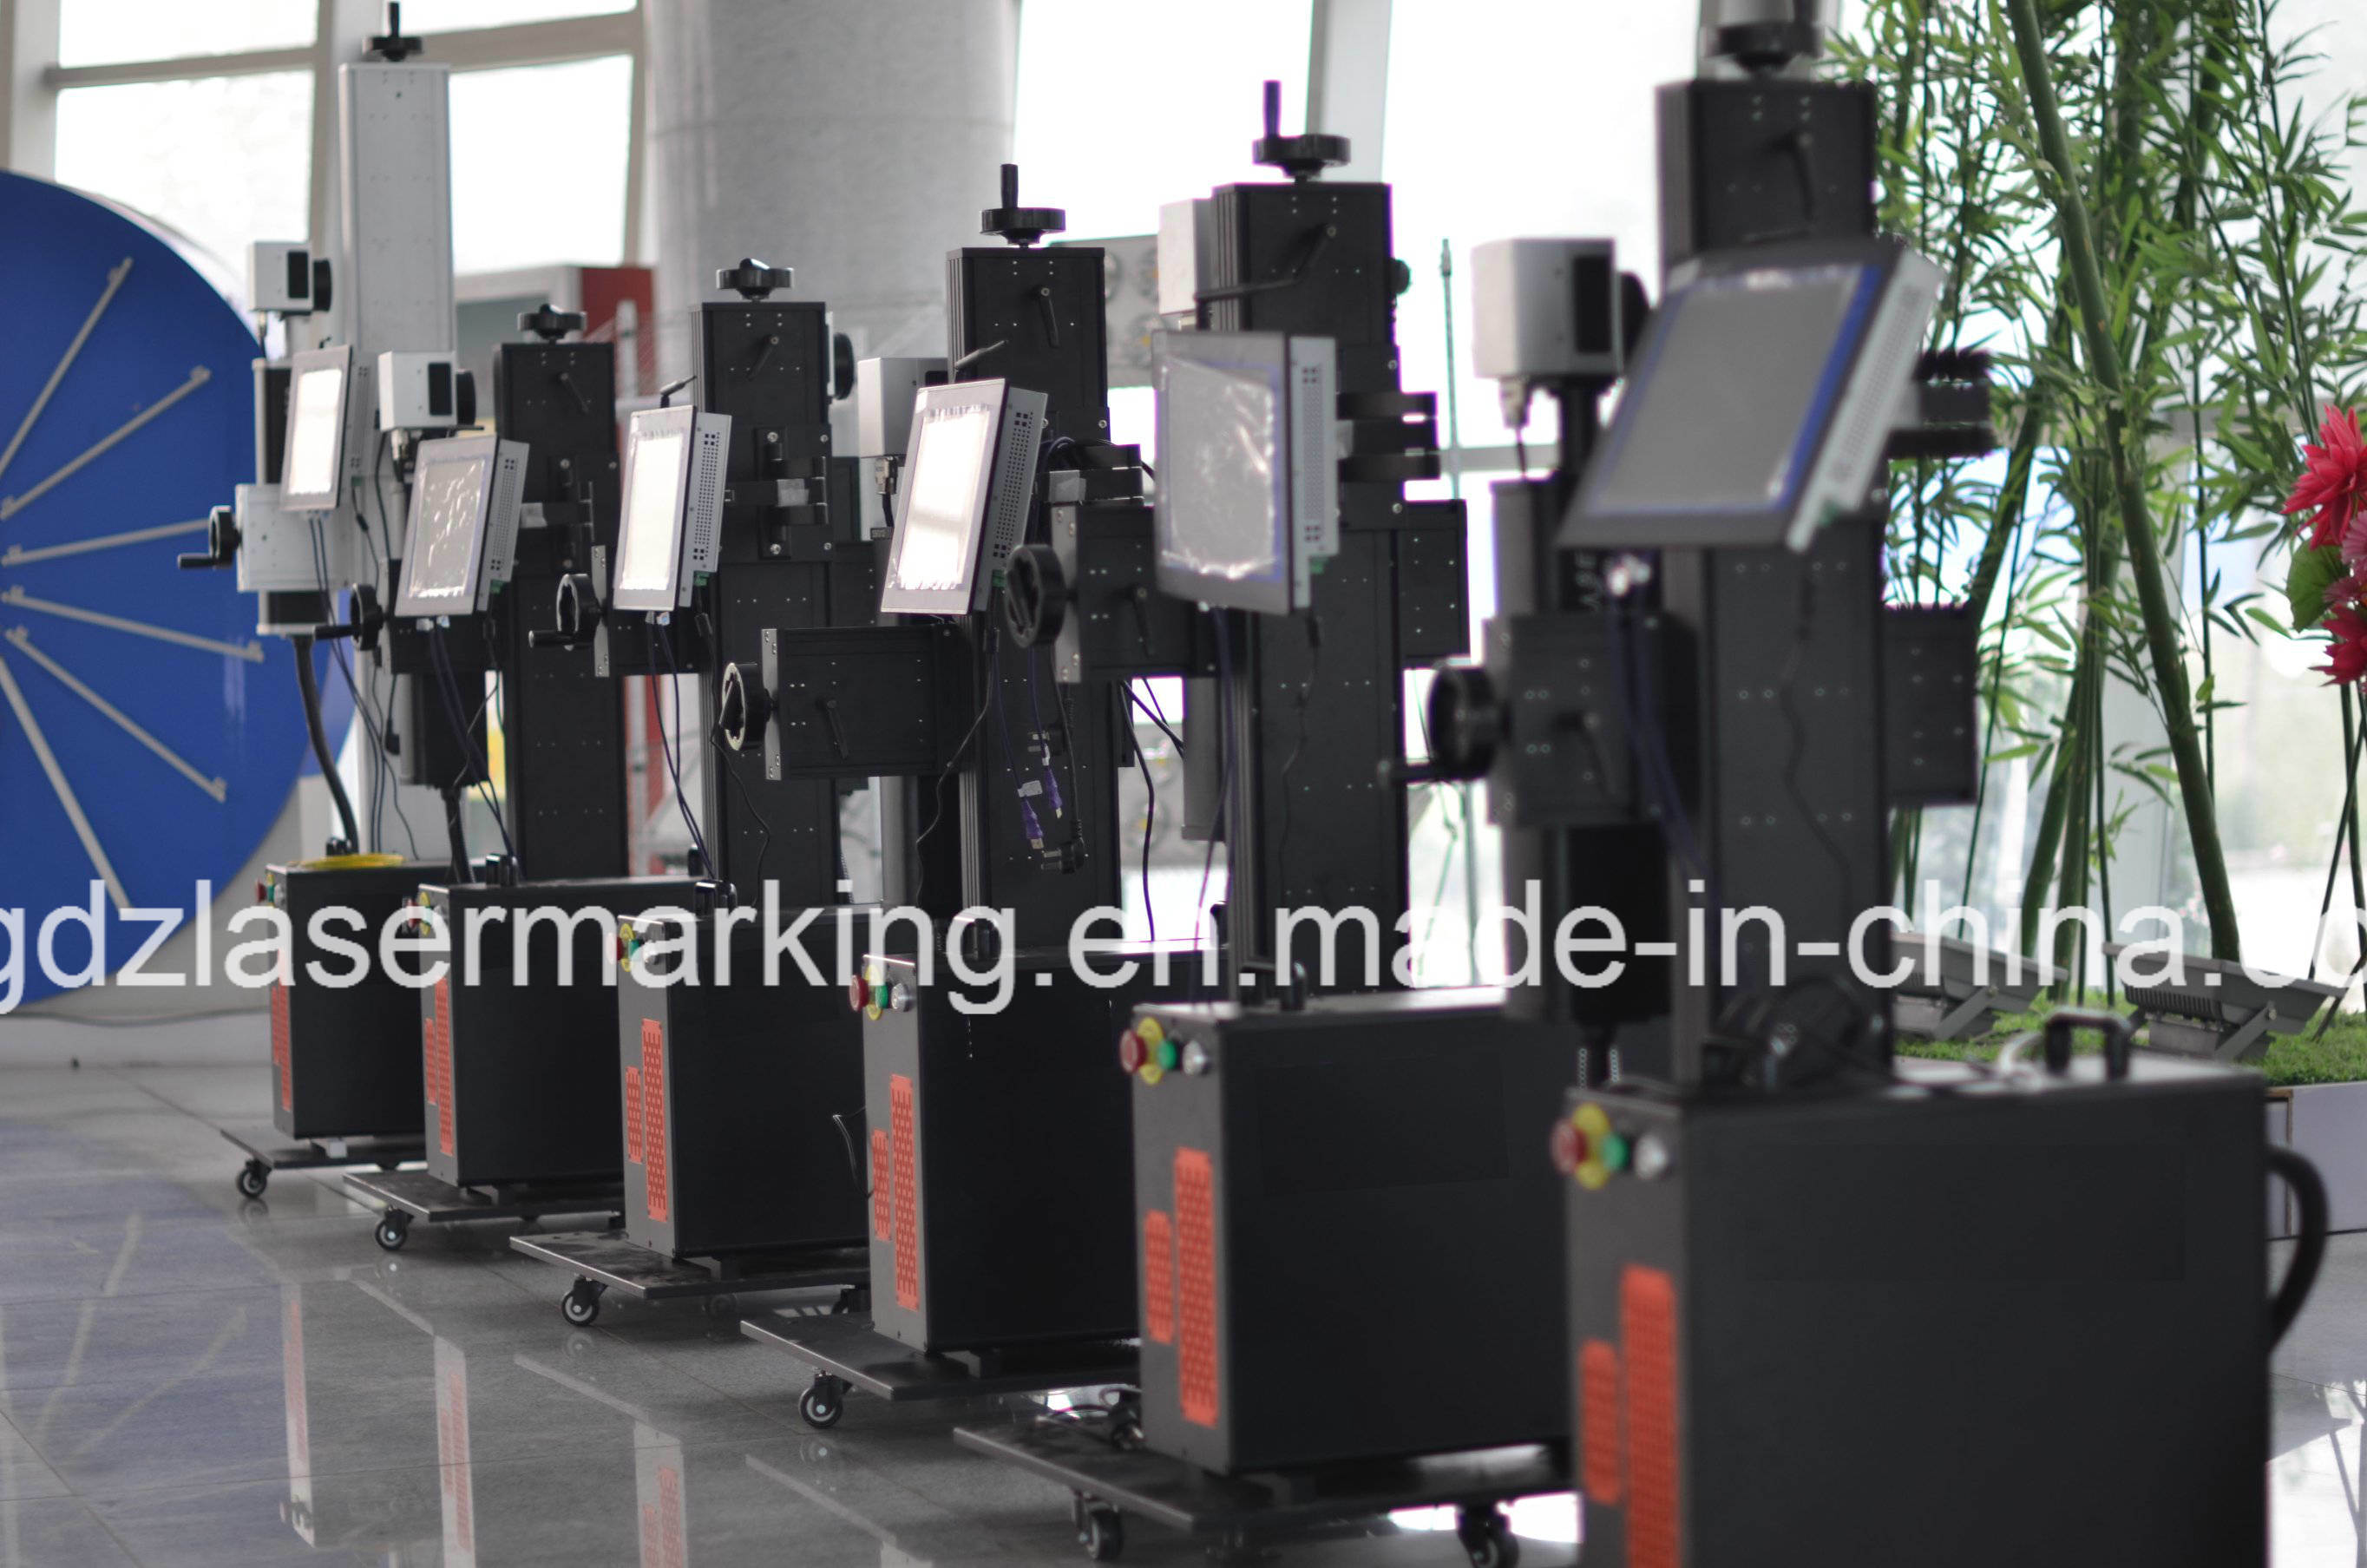 30W 50W Ipg Fiber Laser Marking Machine for Pipe, Plastic/PVC/HDP/PE/CPVC Non-Metal